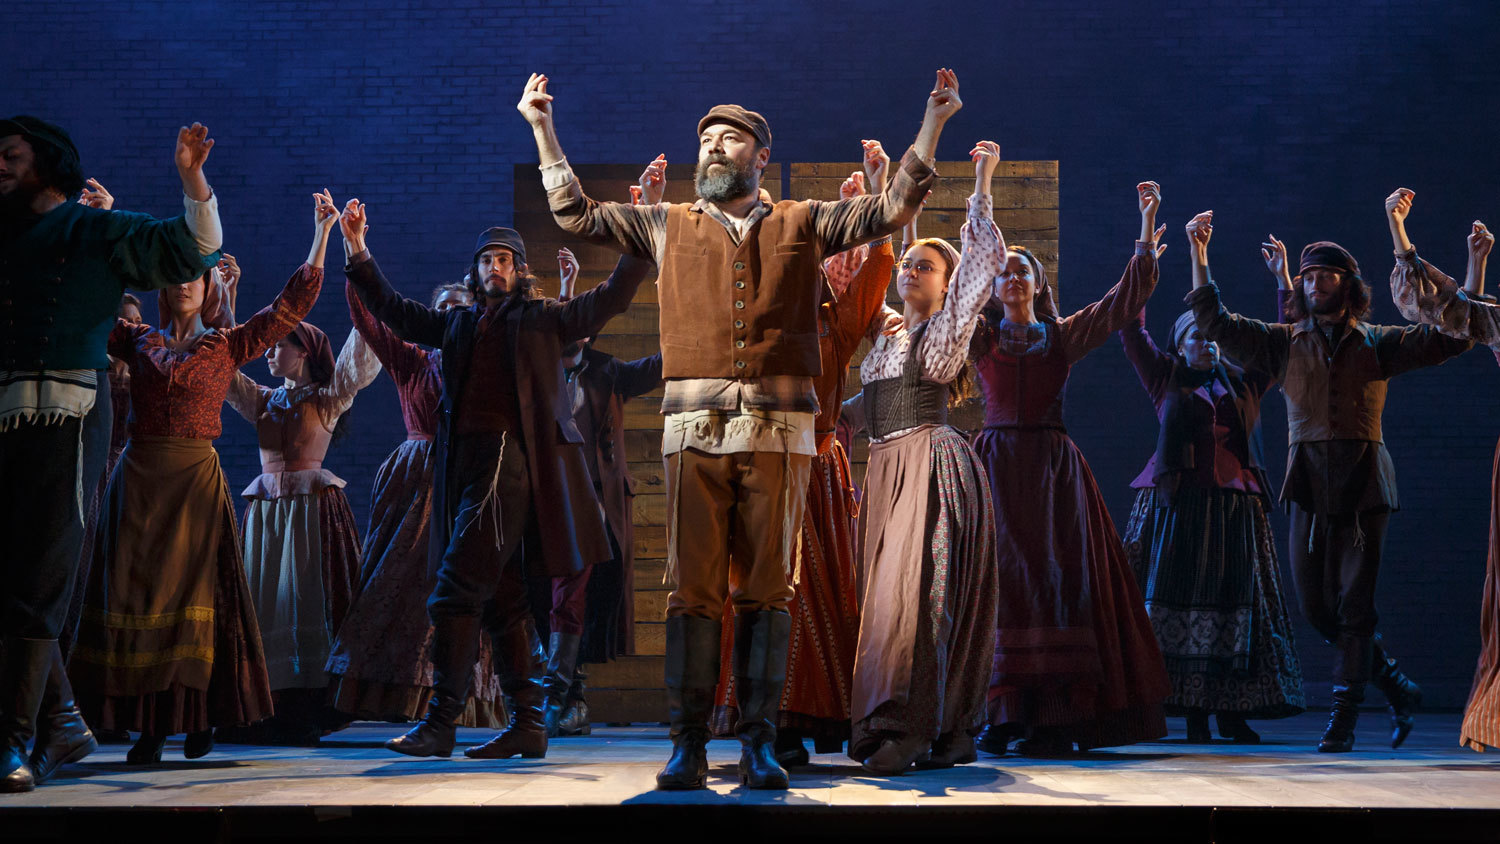 Fiddler On The Roof Theater In New York